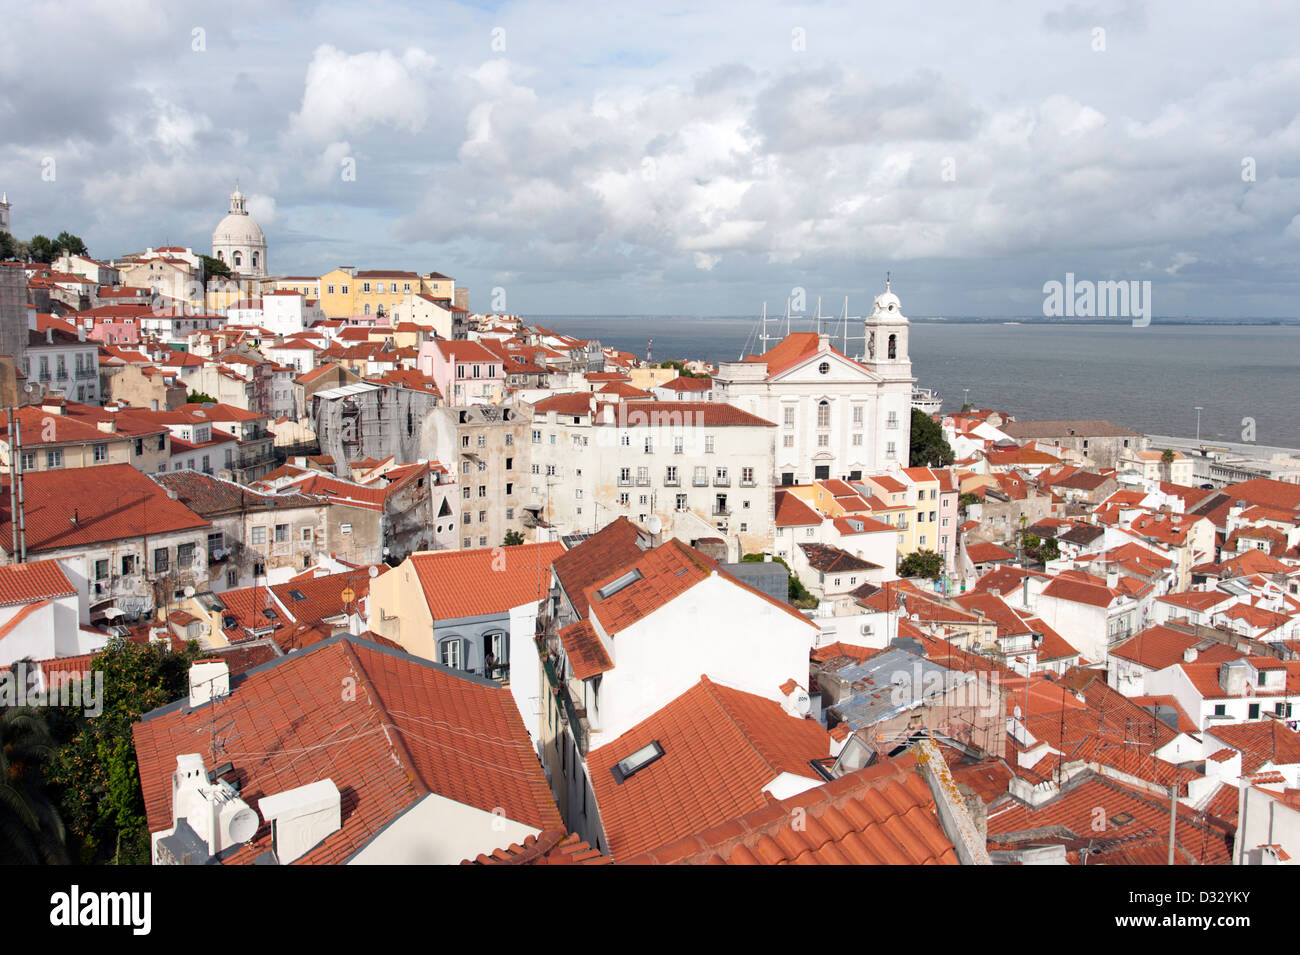 View of Alfama from Miradouro de Santa Luzia, Lisbon, Portugal - Stock Image